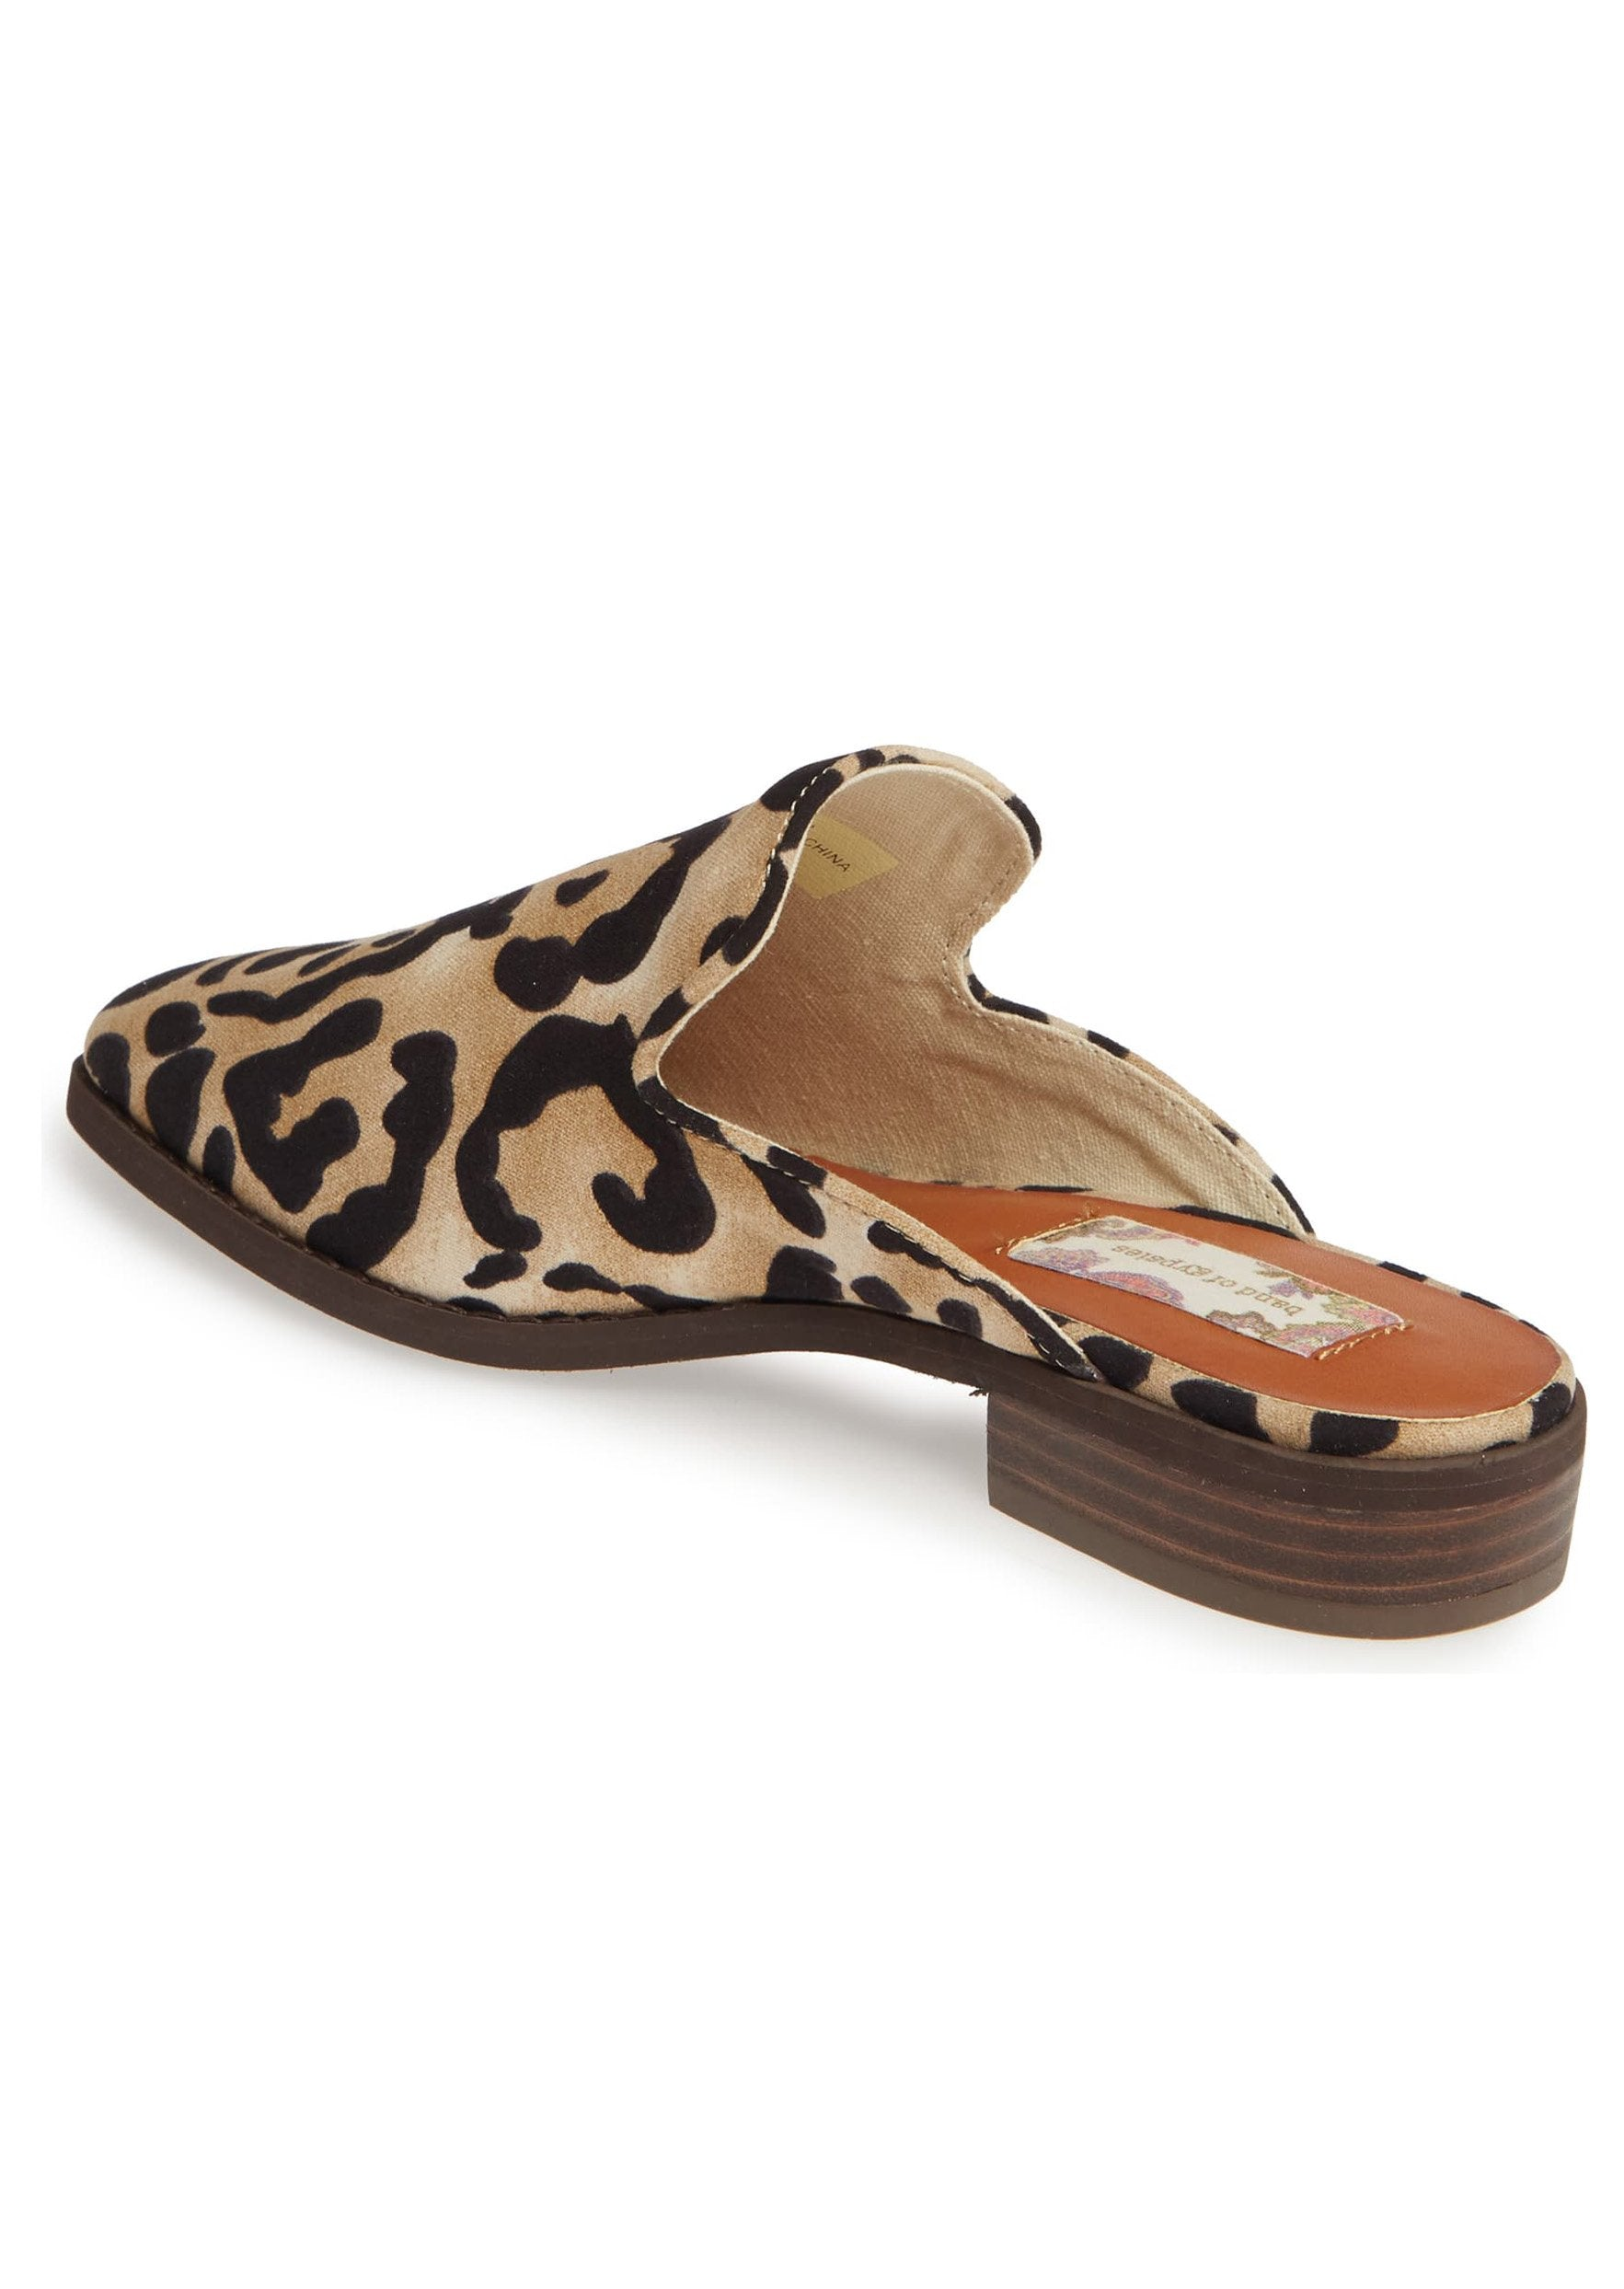 new appearance buy online offer discounts Skipper Leopard Print Loafer Mule - Band of Gypsies